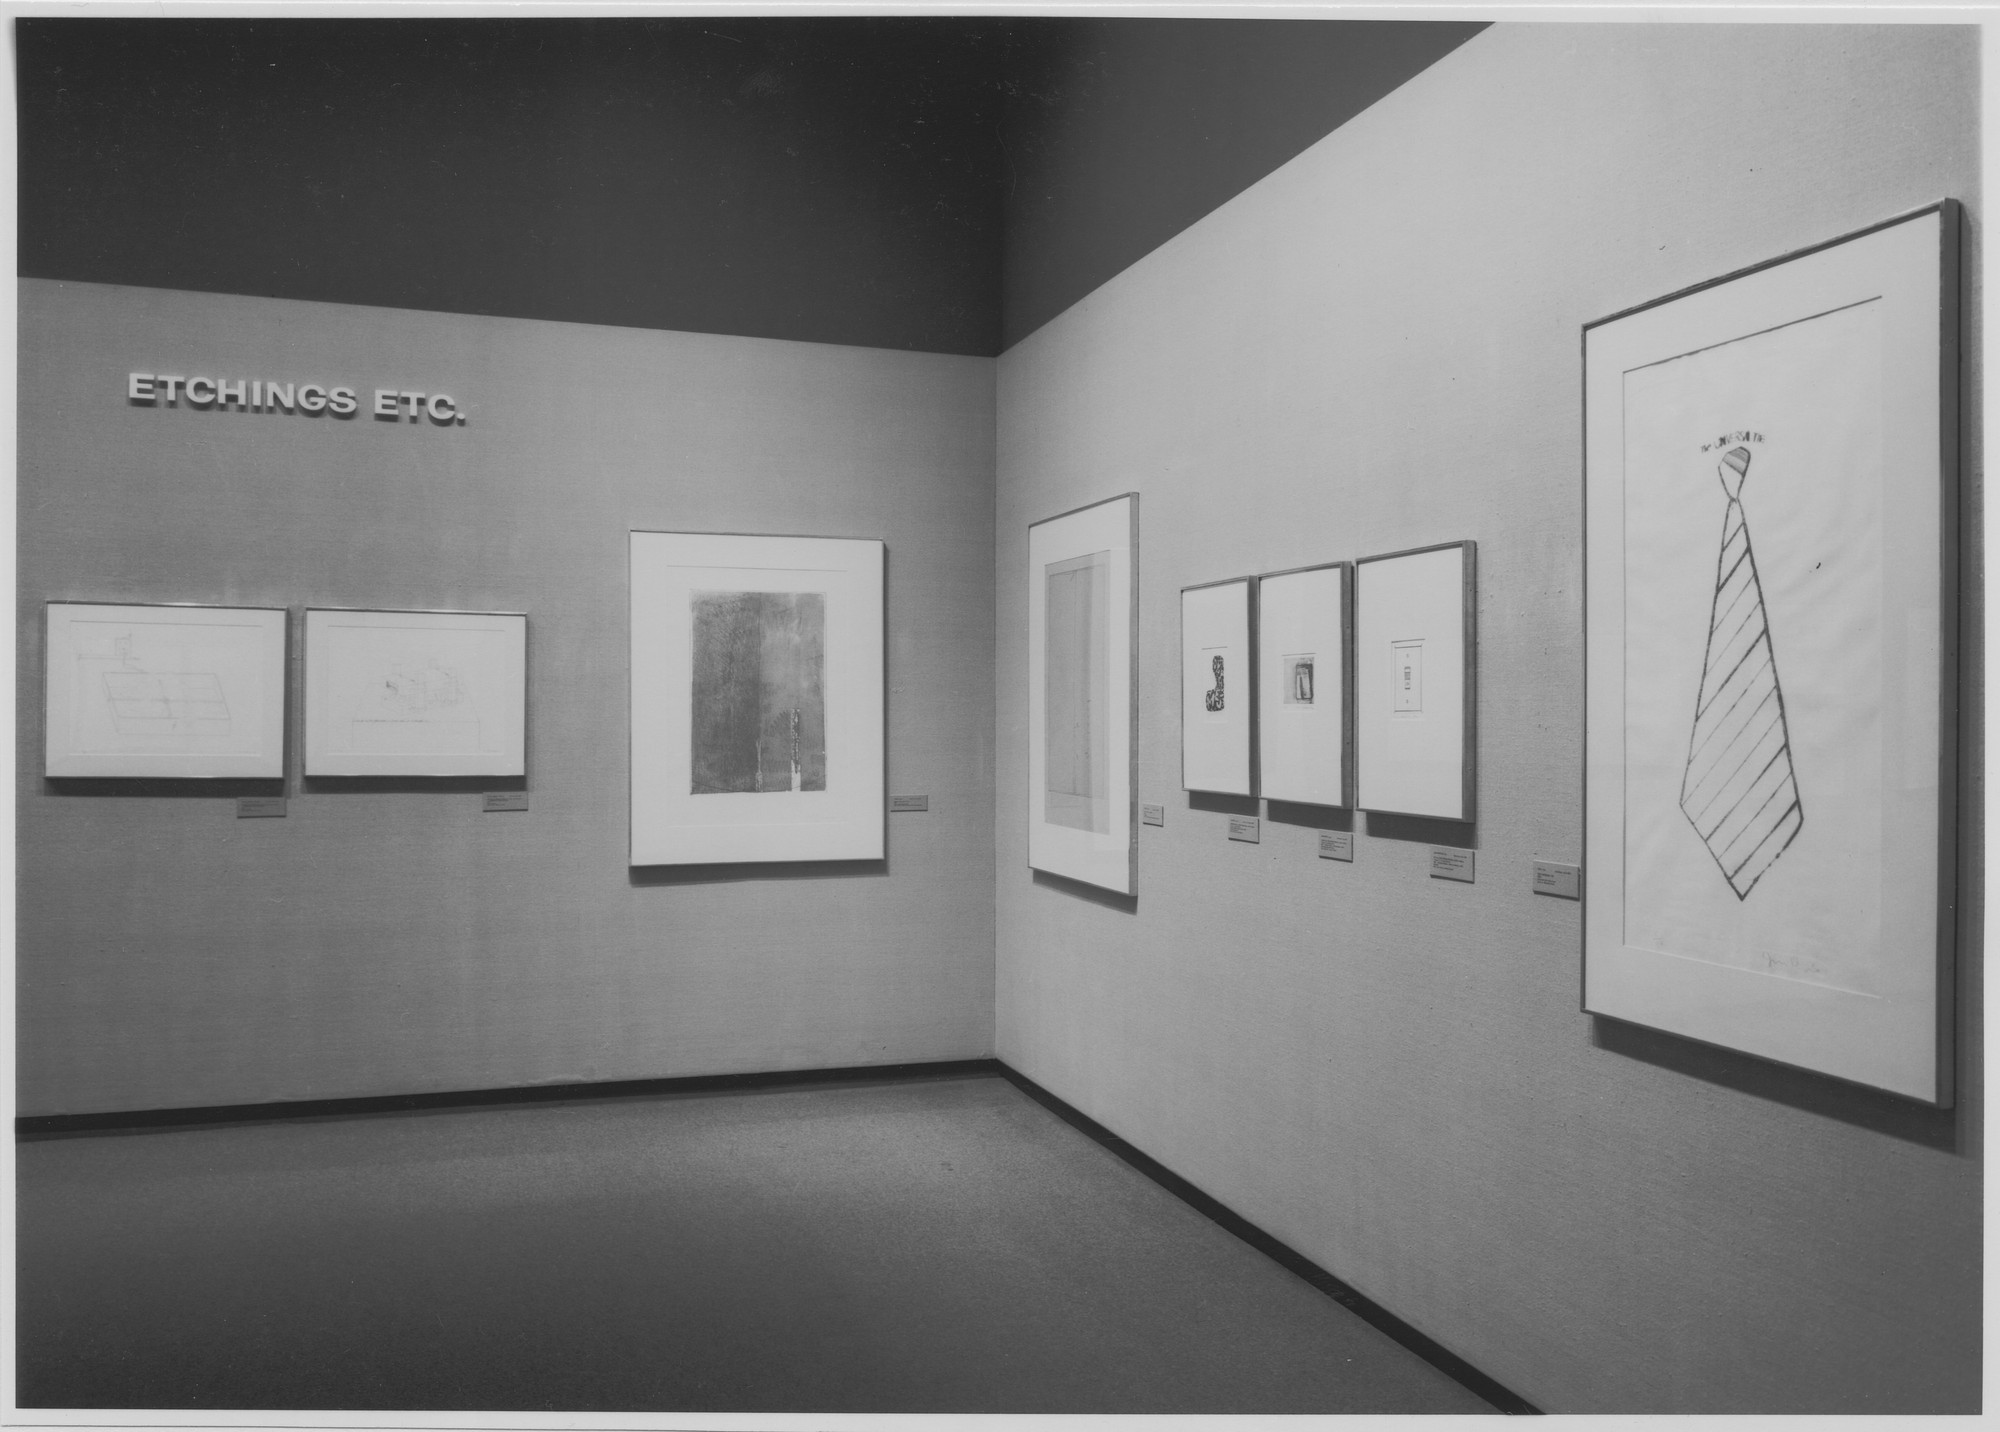 "Installation view of the exhibition, ""Etchings Etc."" October 25, 1972–February 5, 1973. Photographic Archive. The Museum of Modern Art Archives, New York. IN1014.1. Photograph by Katherine Keller."